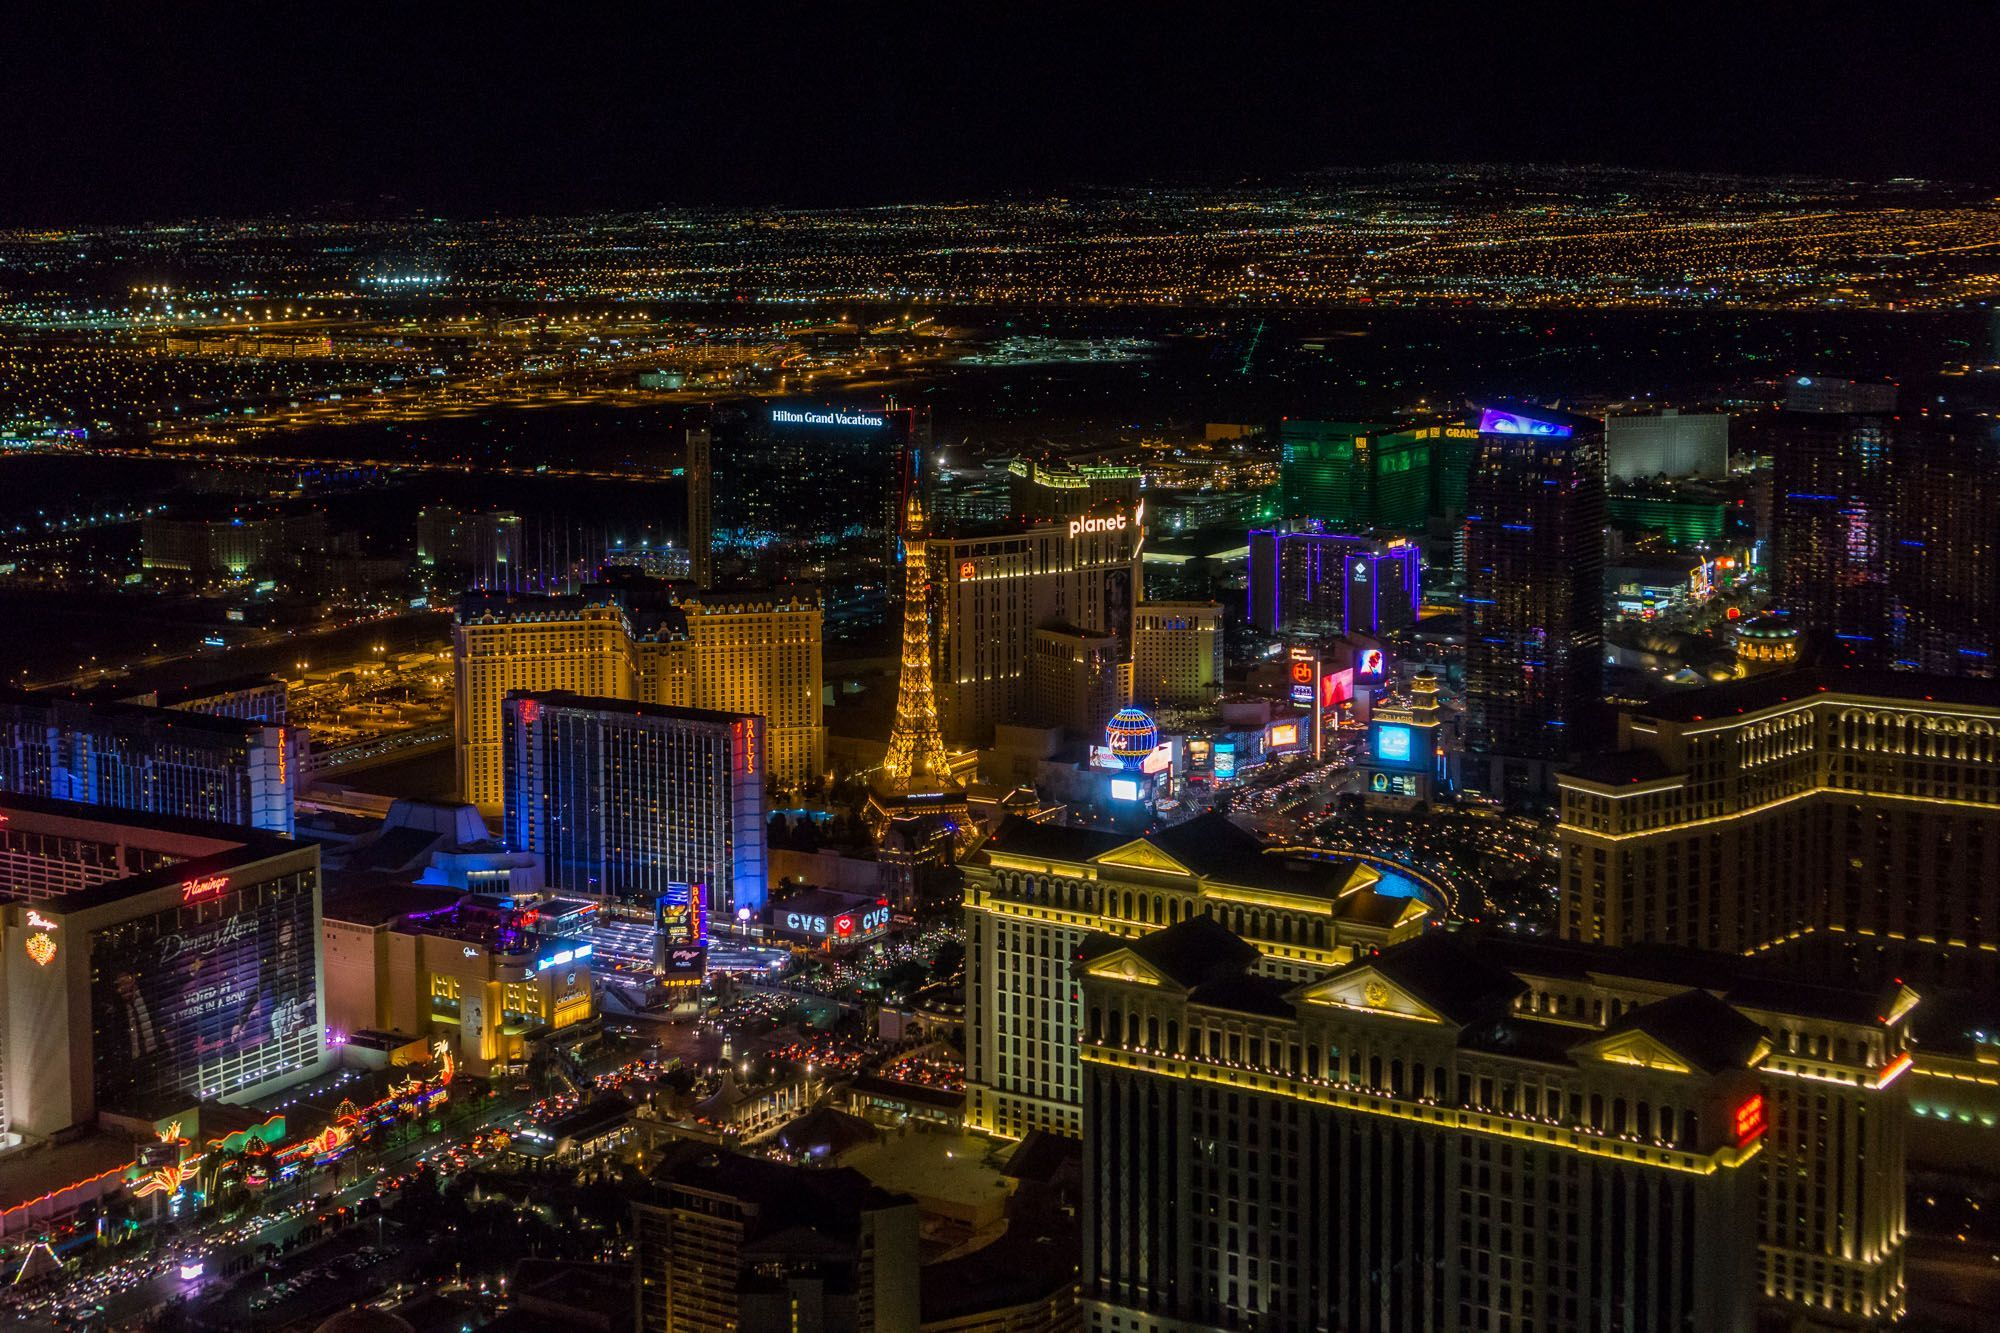 Las Vegas Dining 101 A Guide for Eating and Drinking in